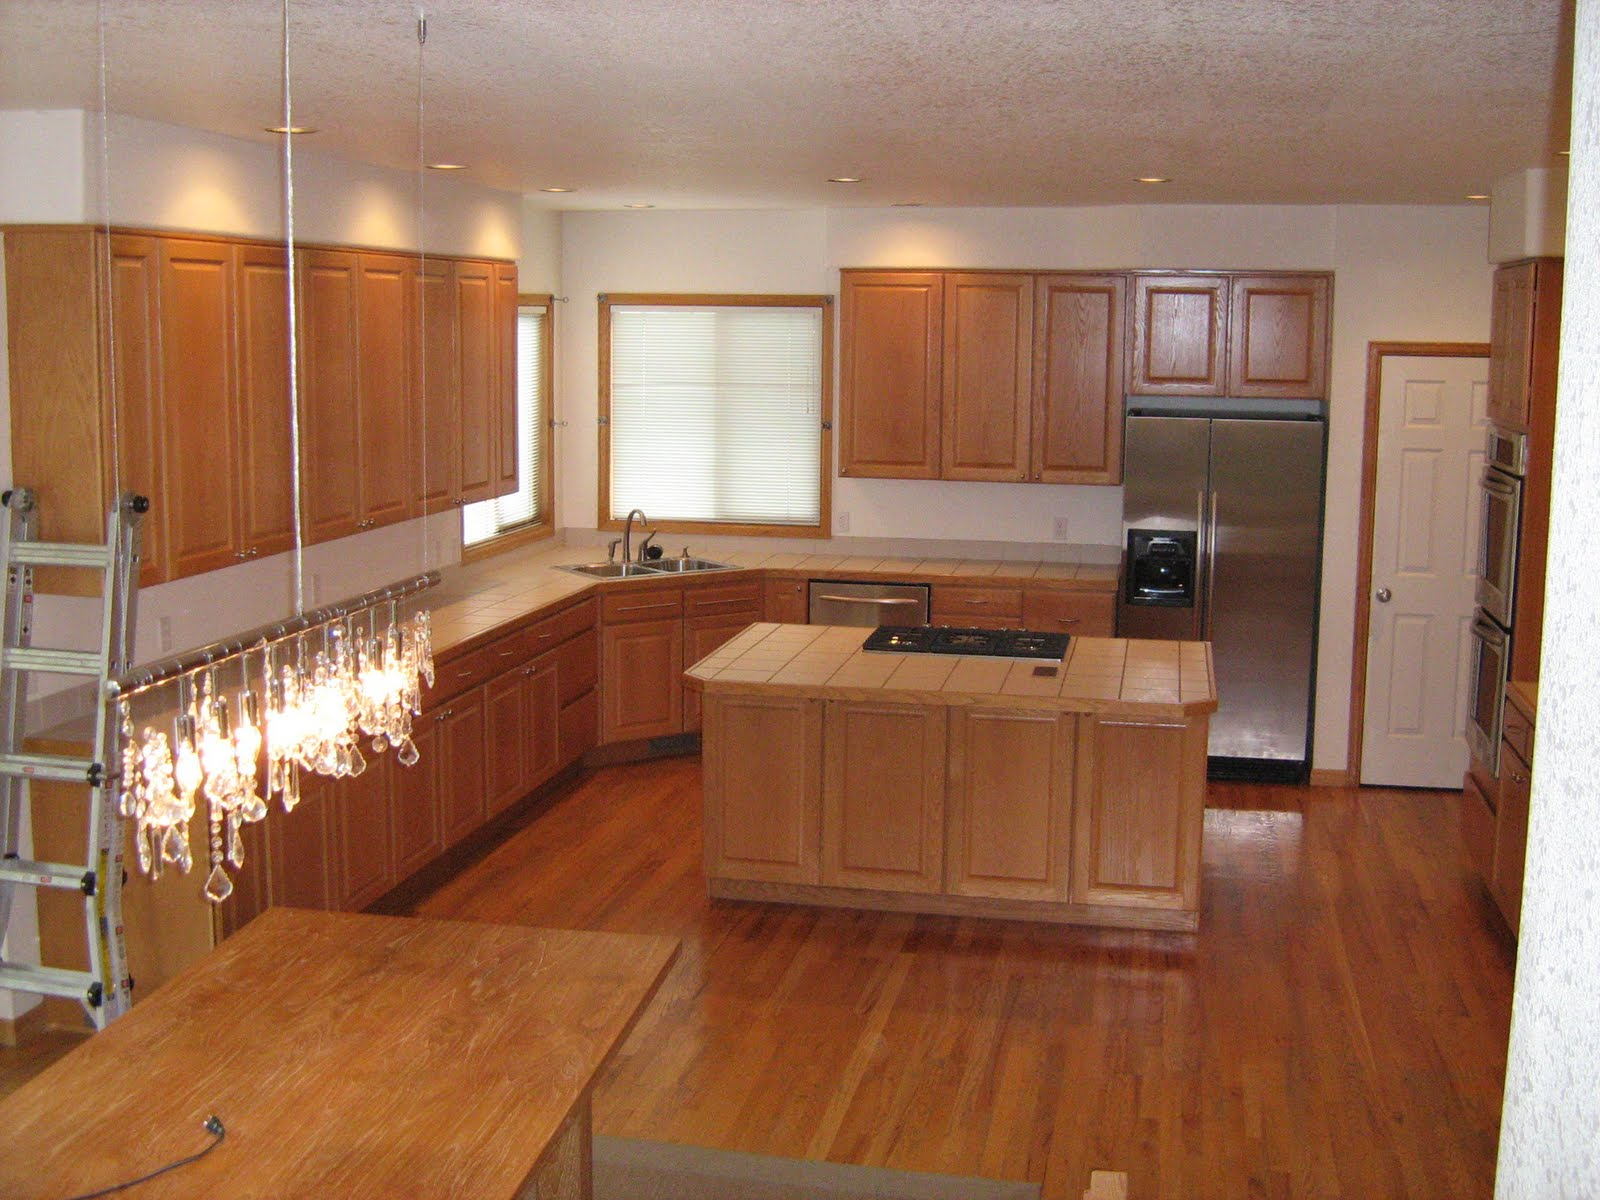 Design In Wood What To Do With Oak Cabinets: Integrity Installations............ (A Division Of Front